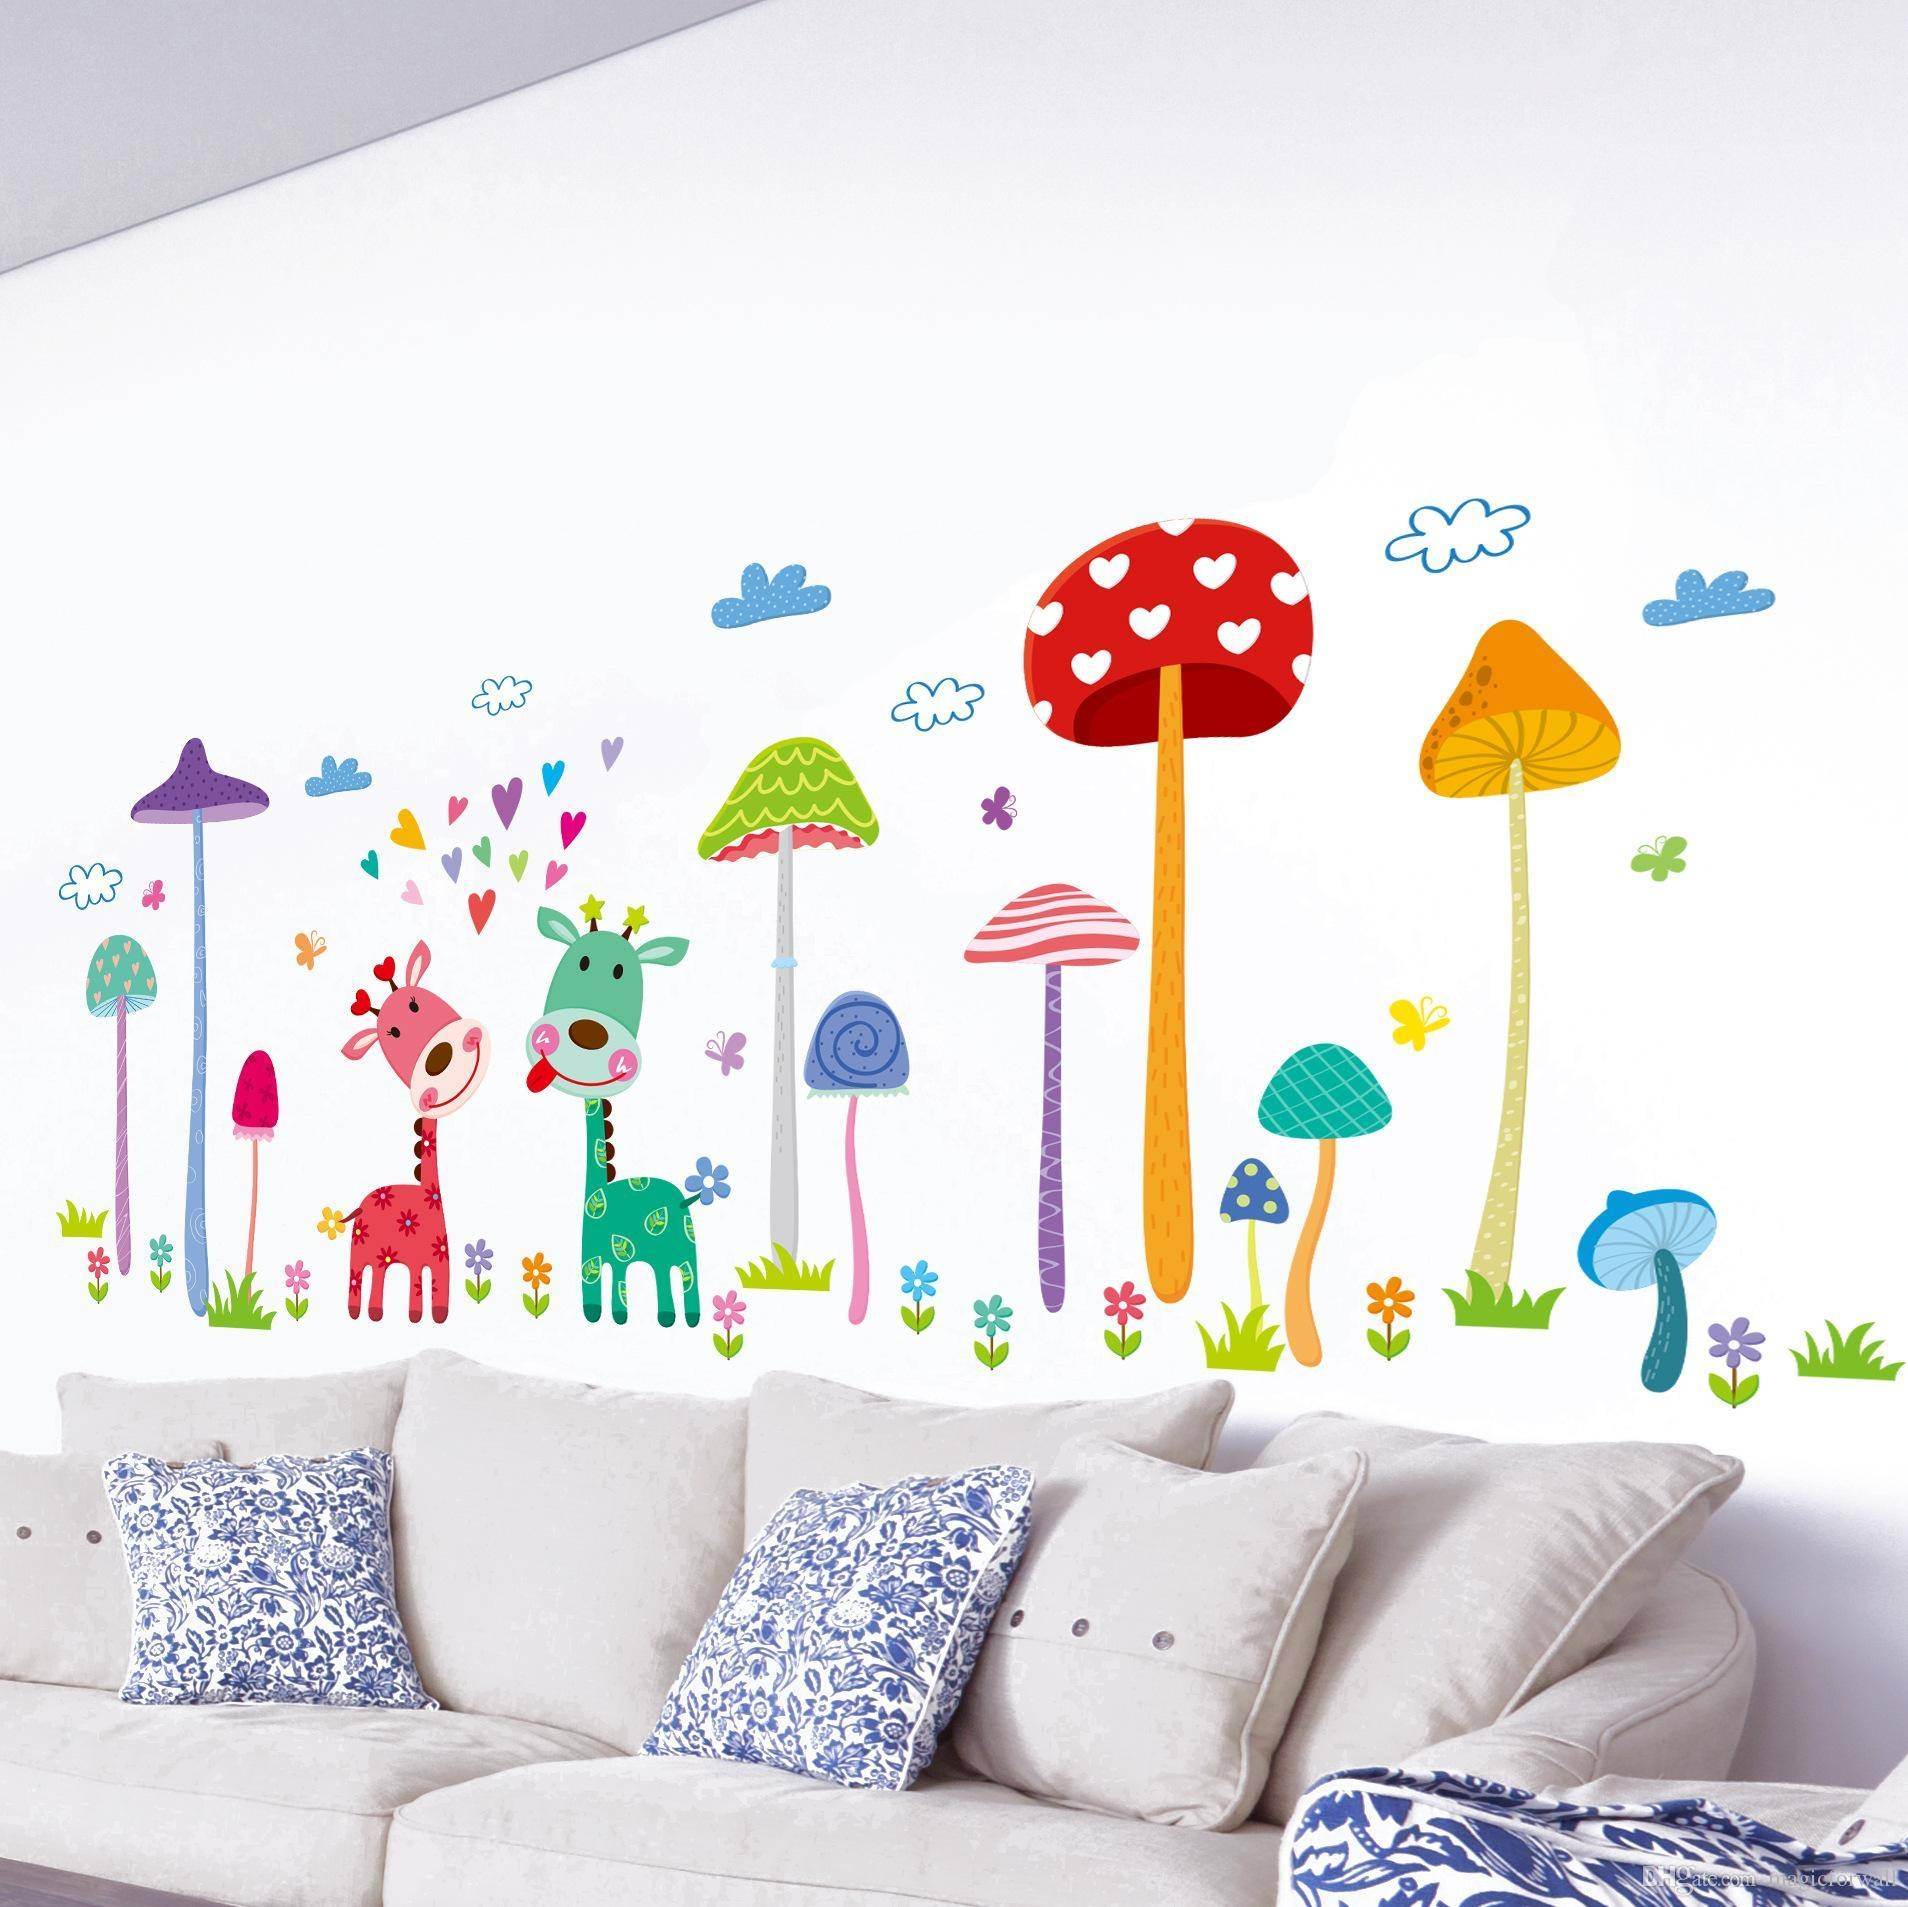 Forest Mushroom Deer Animals Home Wall Art Mural Decor Kids Babies Within Most Recently Released Animal Wall Artstickers (View 14 of 20)